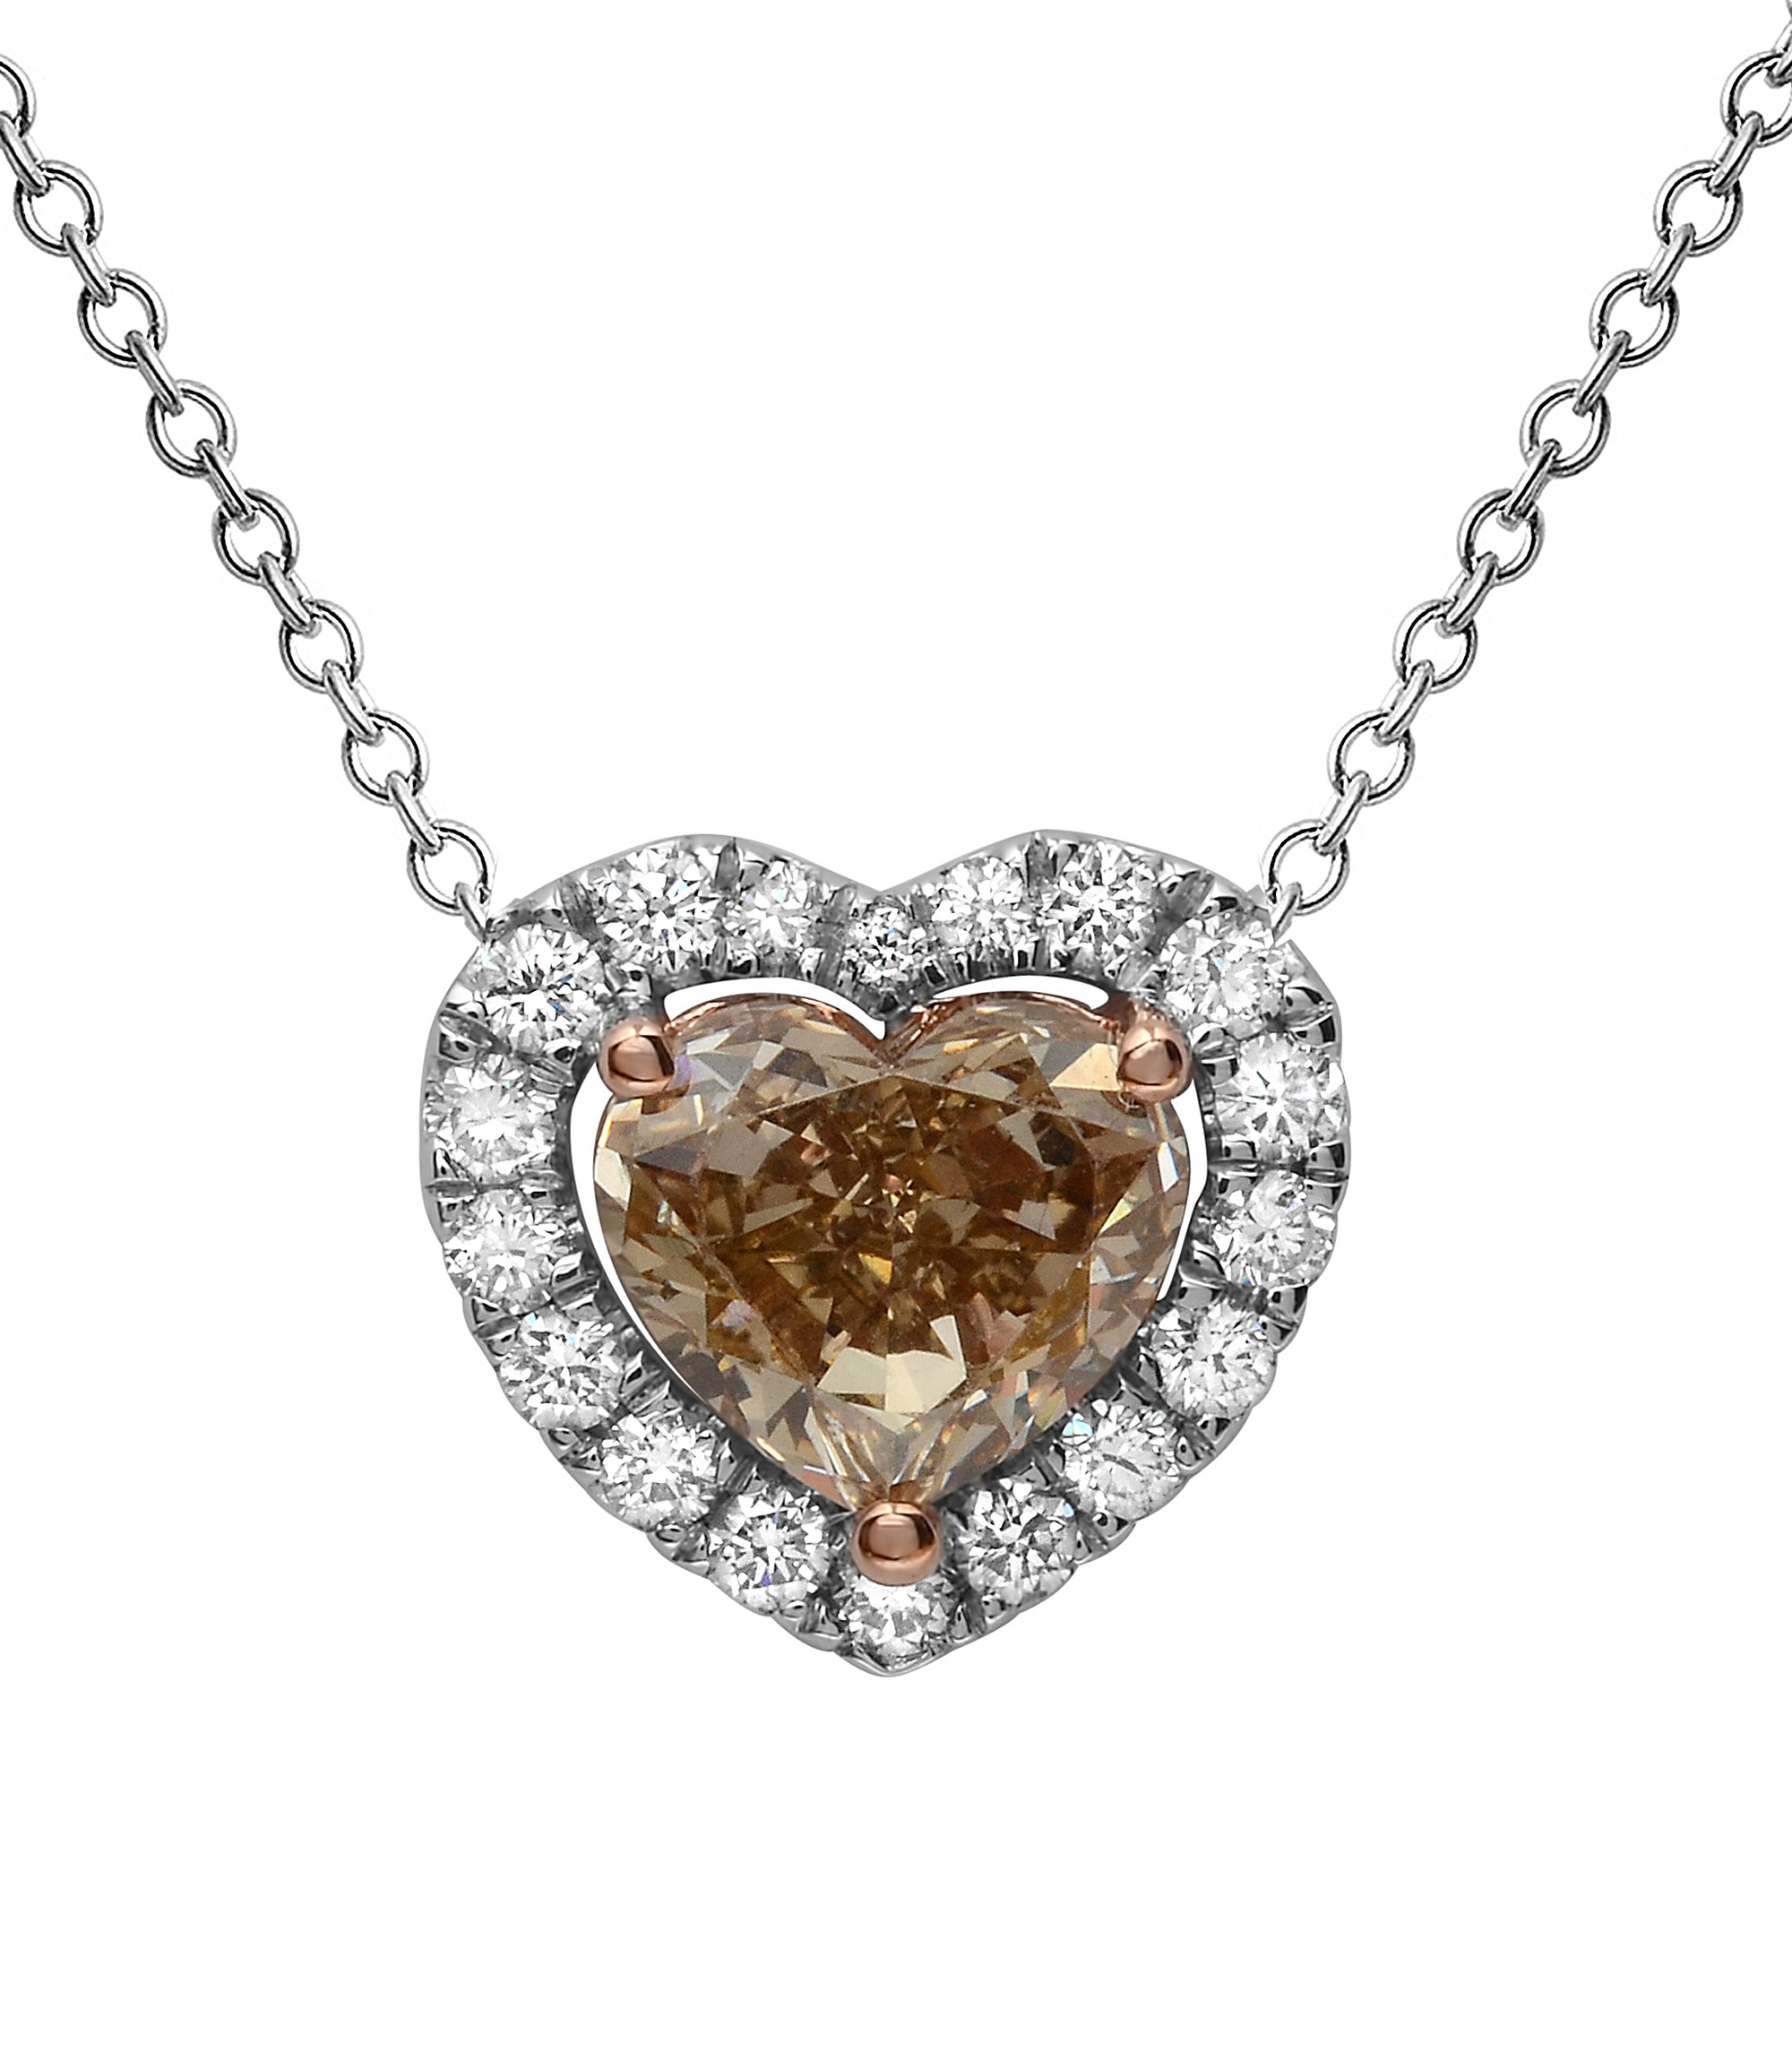 1.64 Carat Fancy Yellow-Brown Diamond Pendant with Chain in 18K White Gold